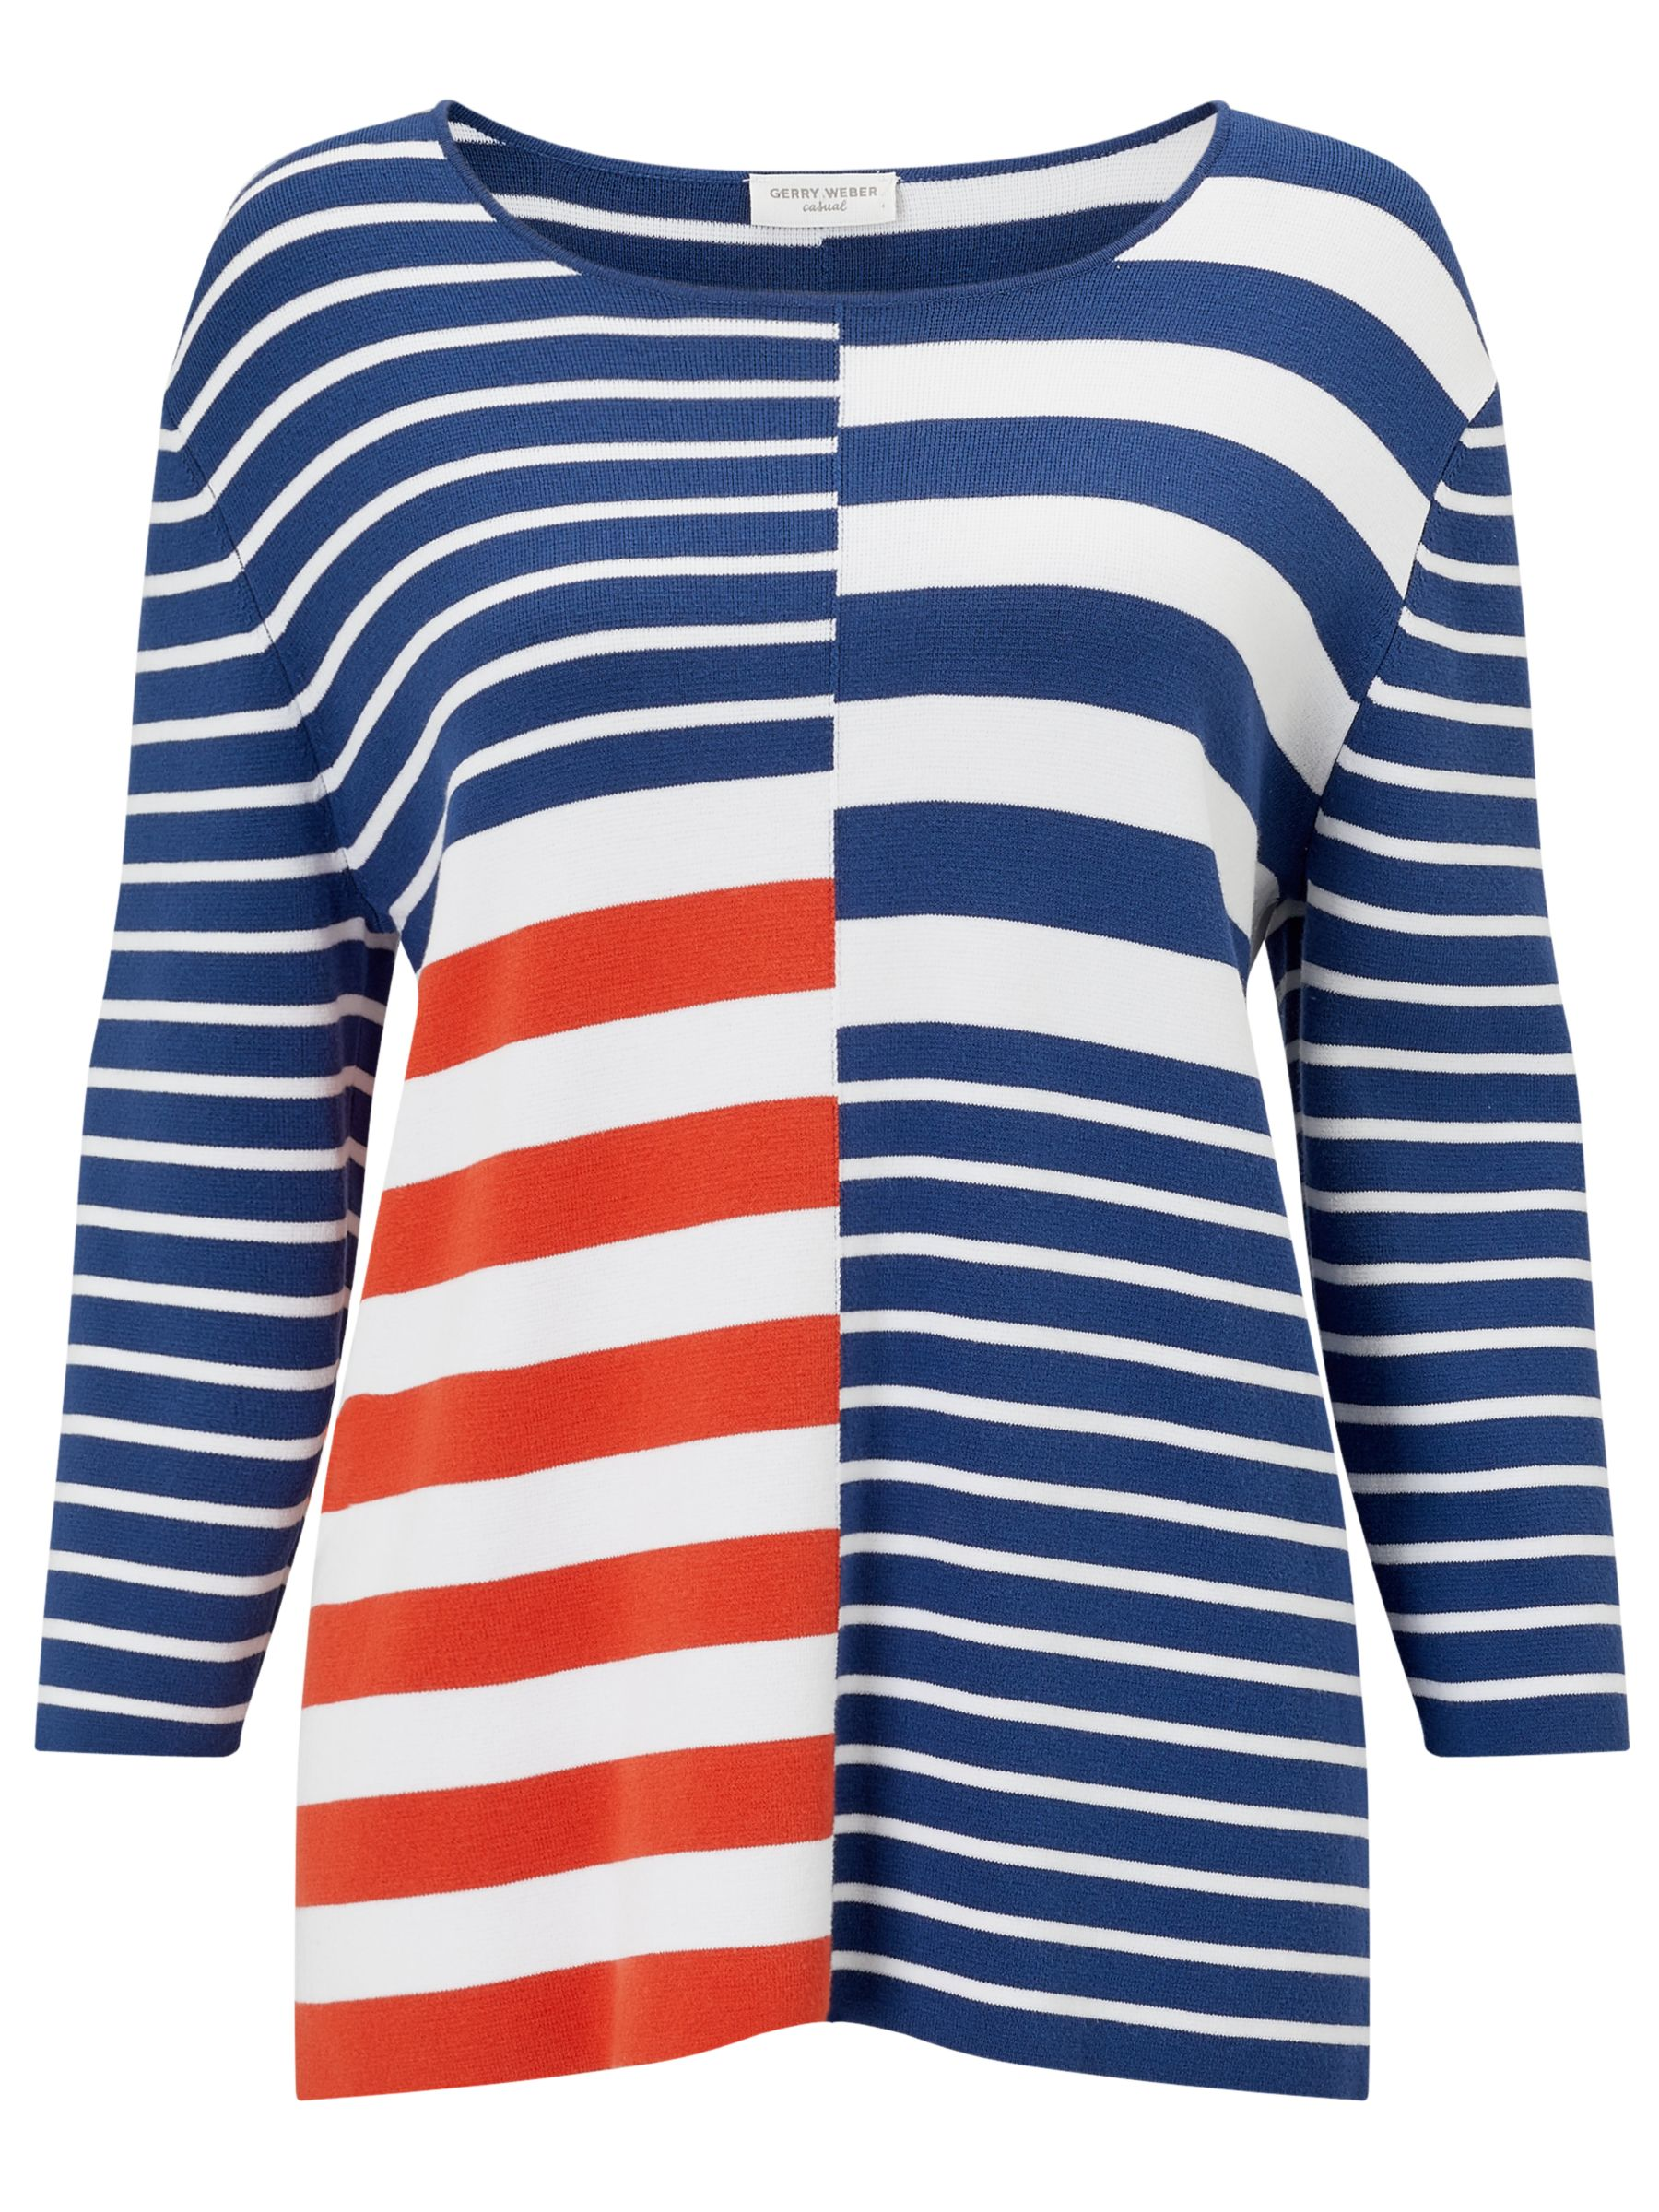 Gerry Weber Gerry Weber Colour Block Stripe Jumper, Multi